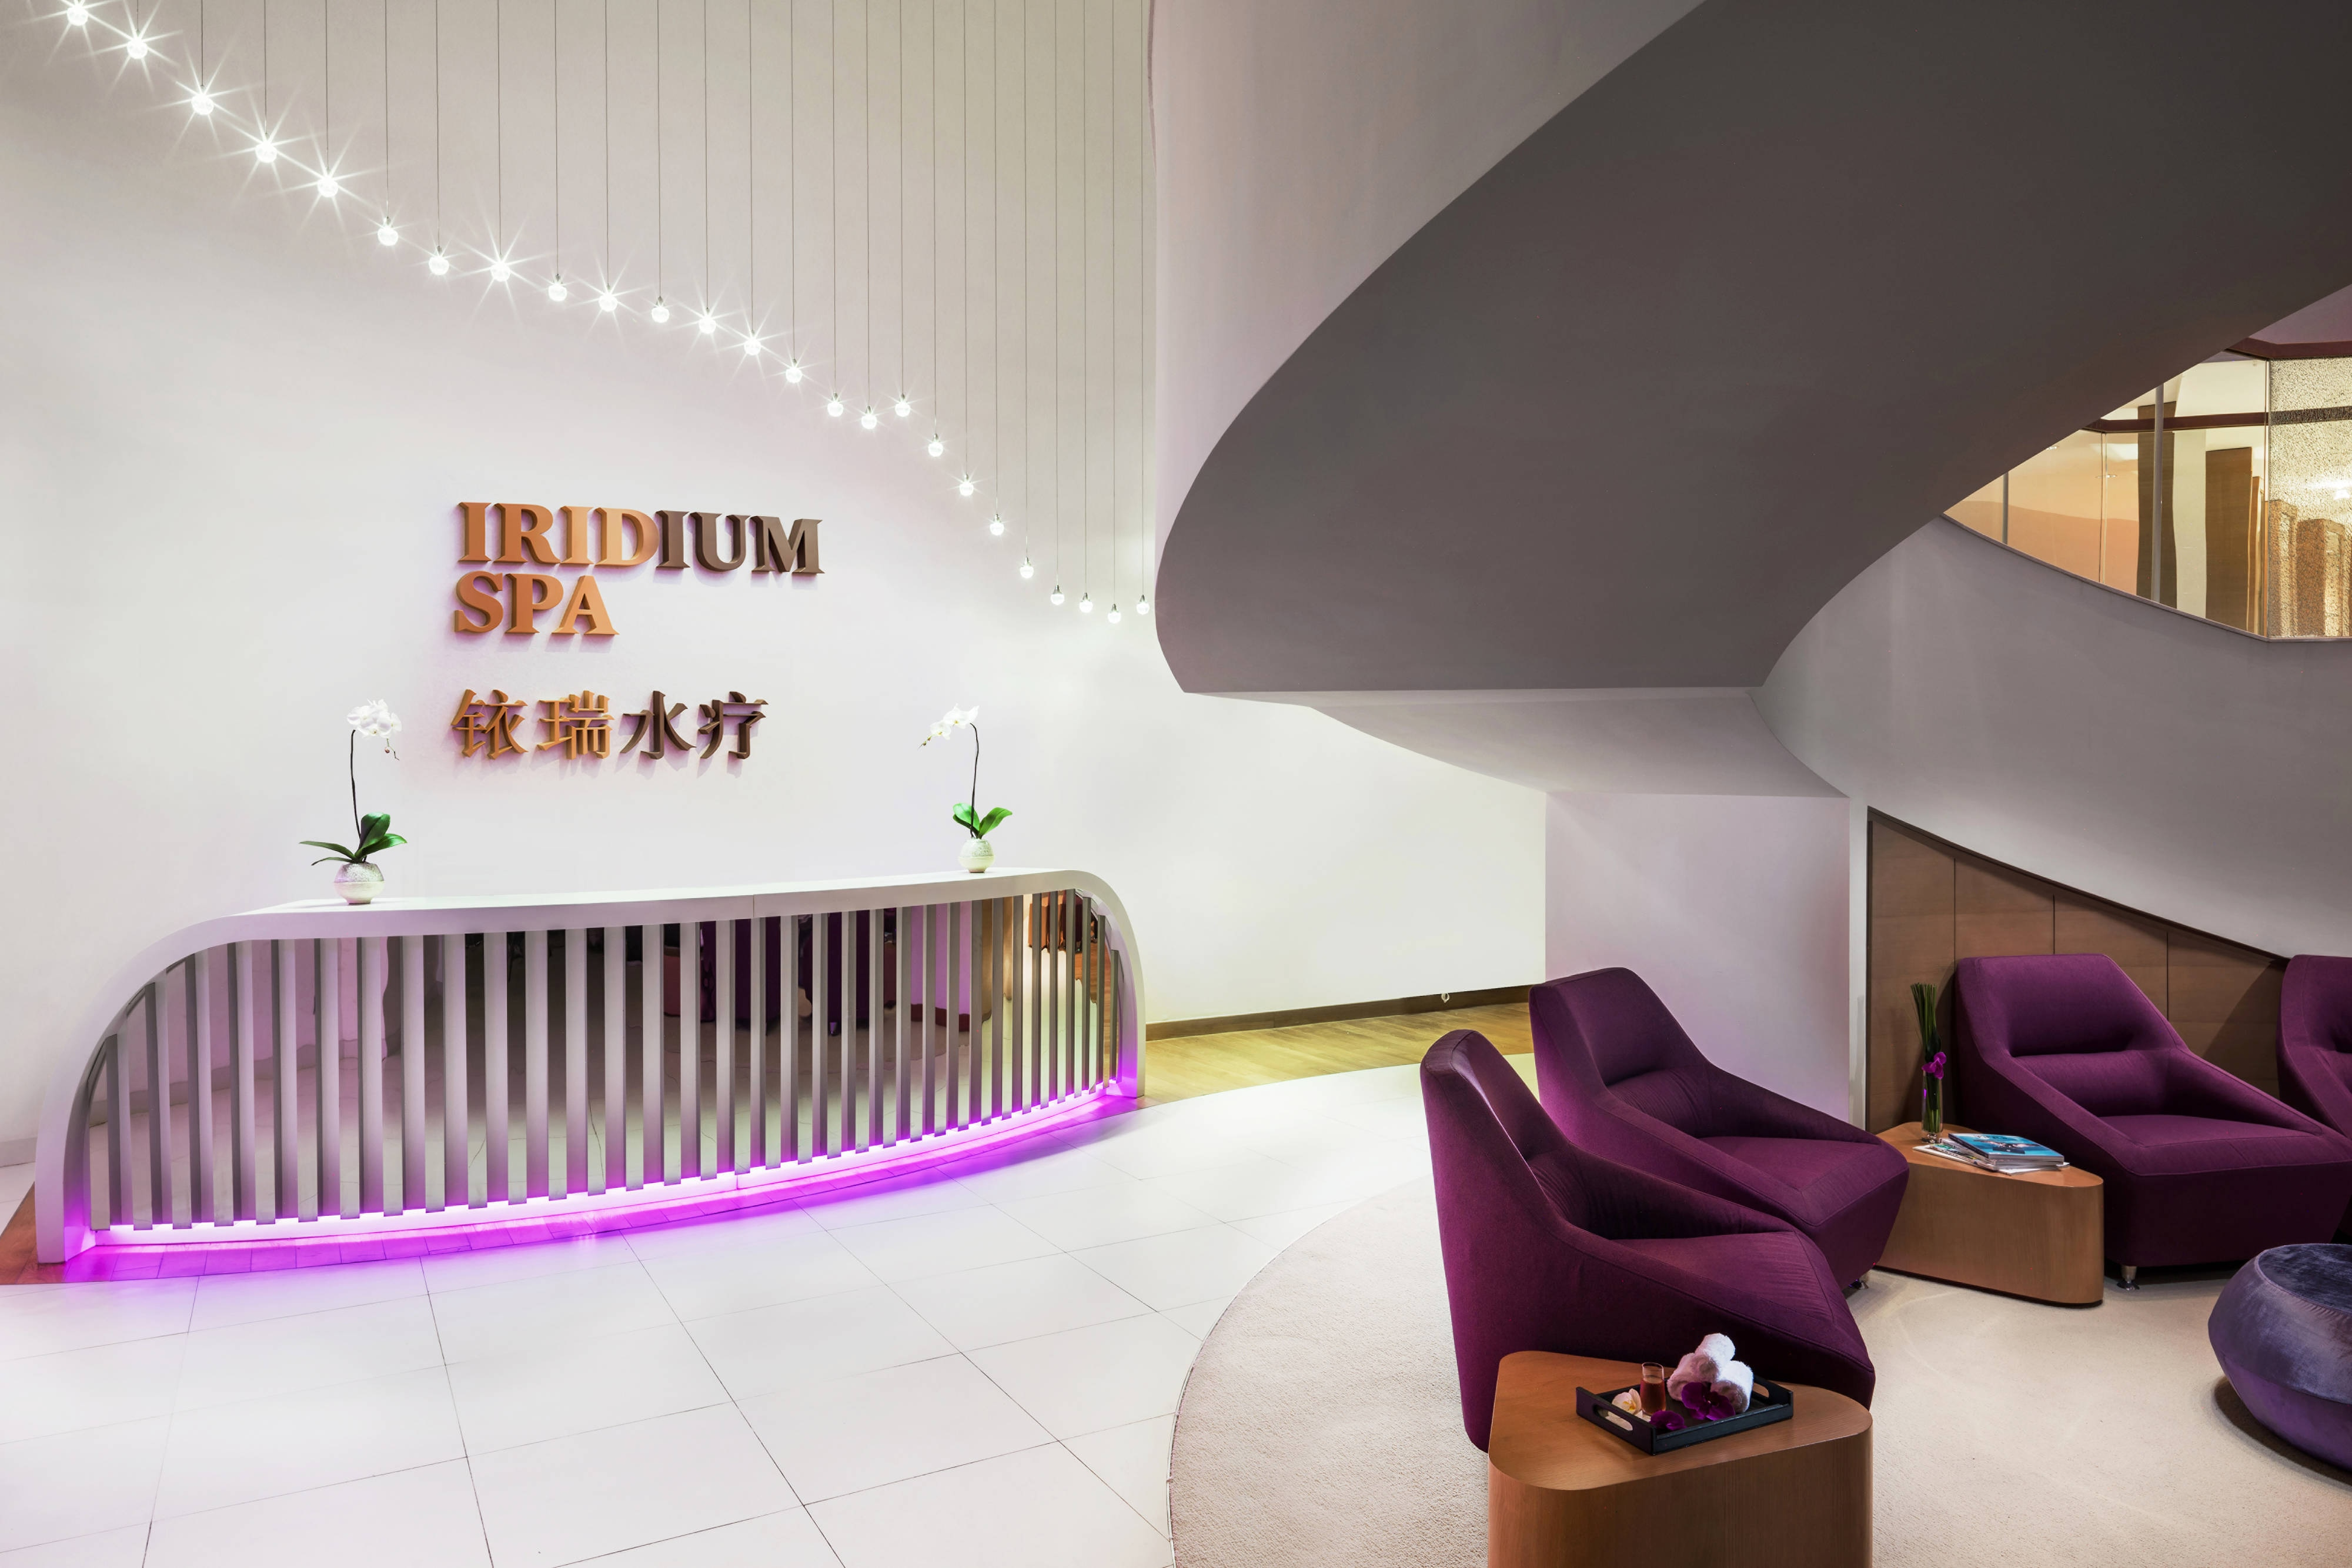 Iridium Spa - Reception